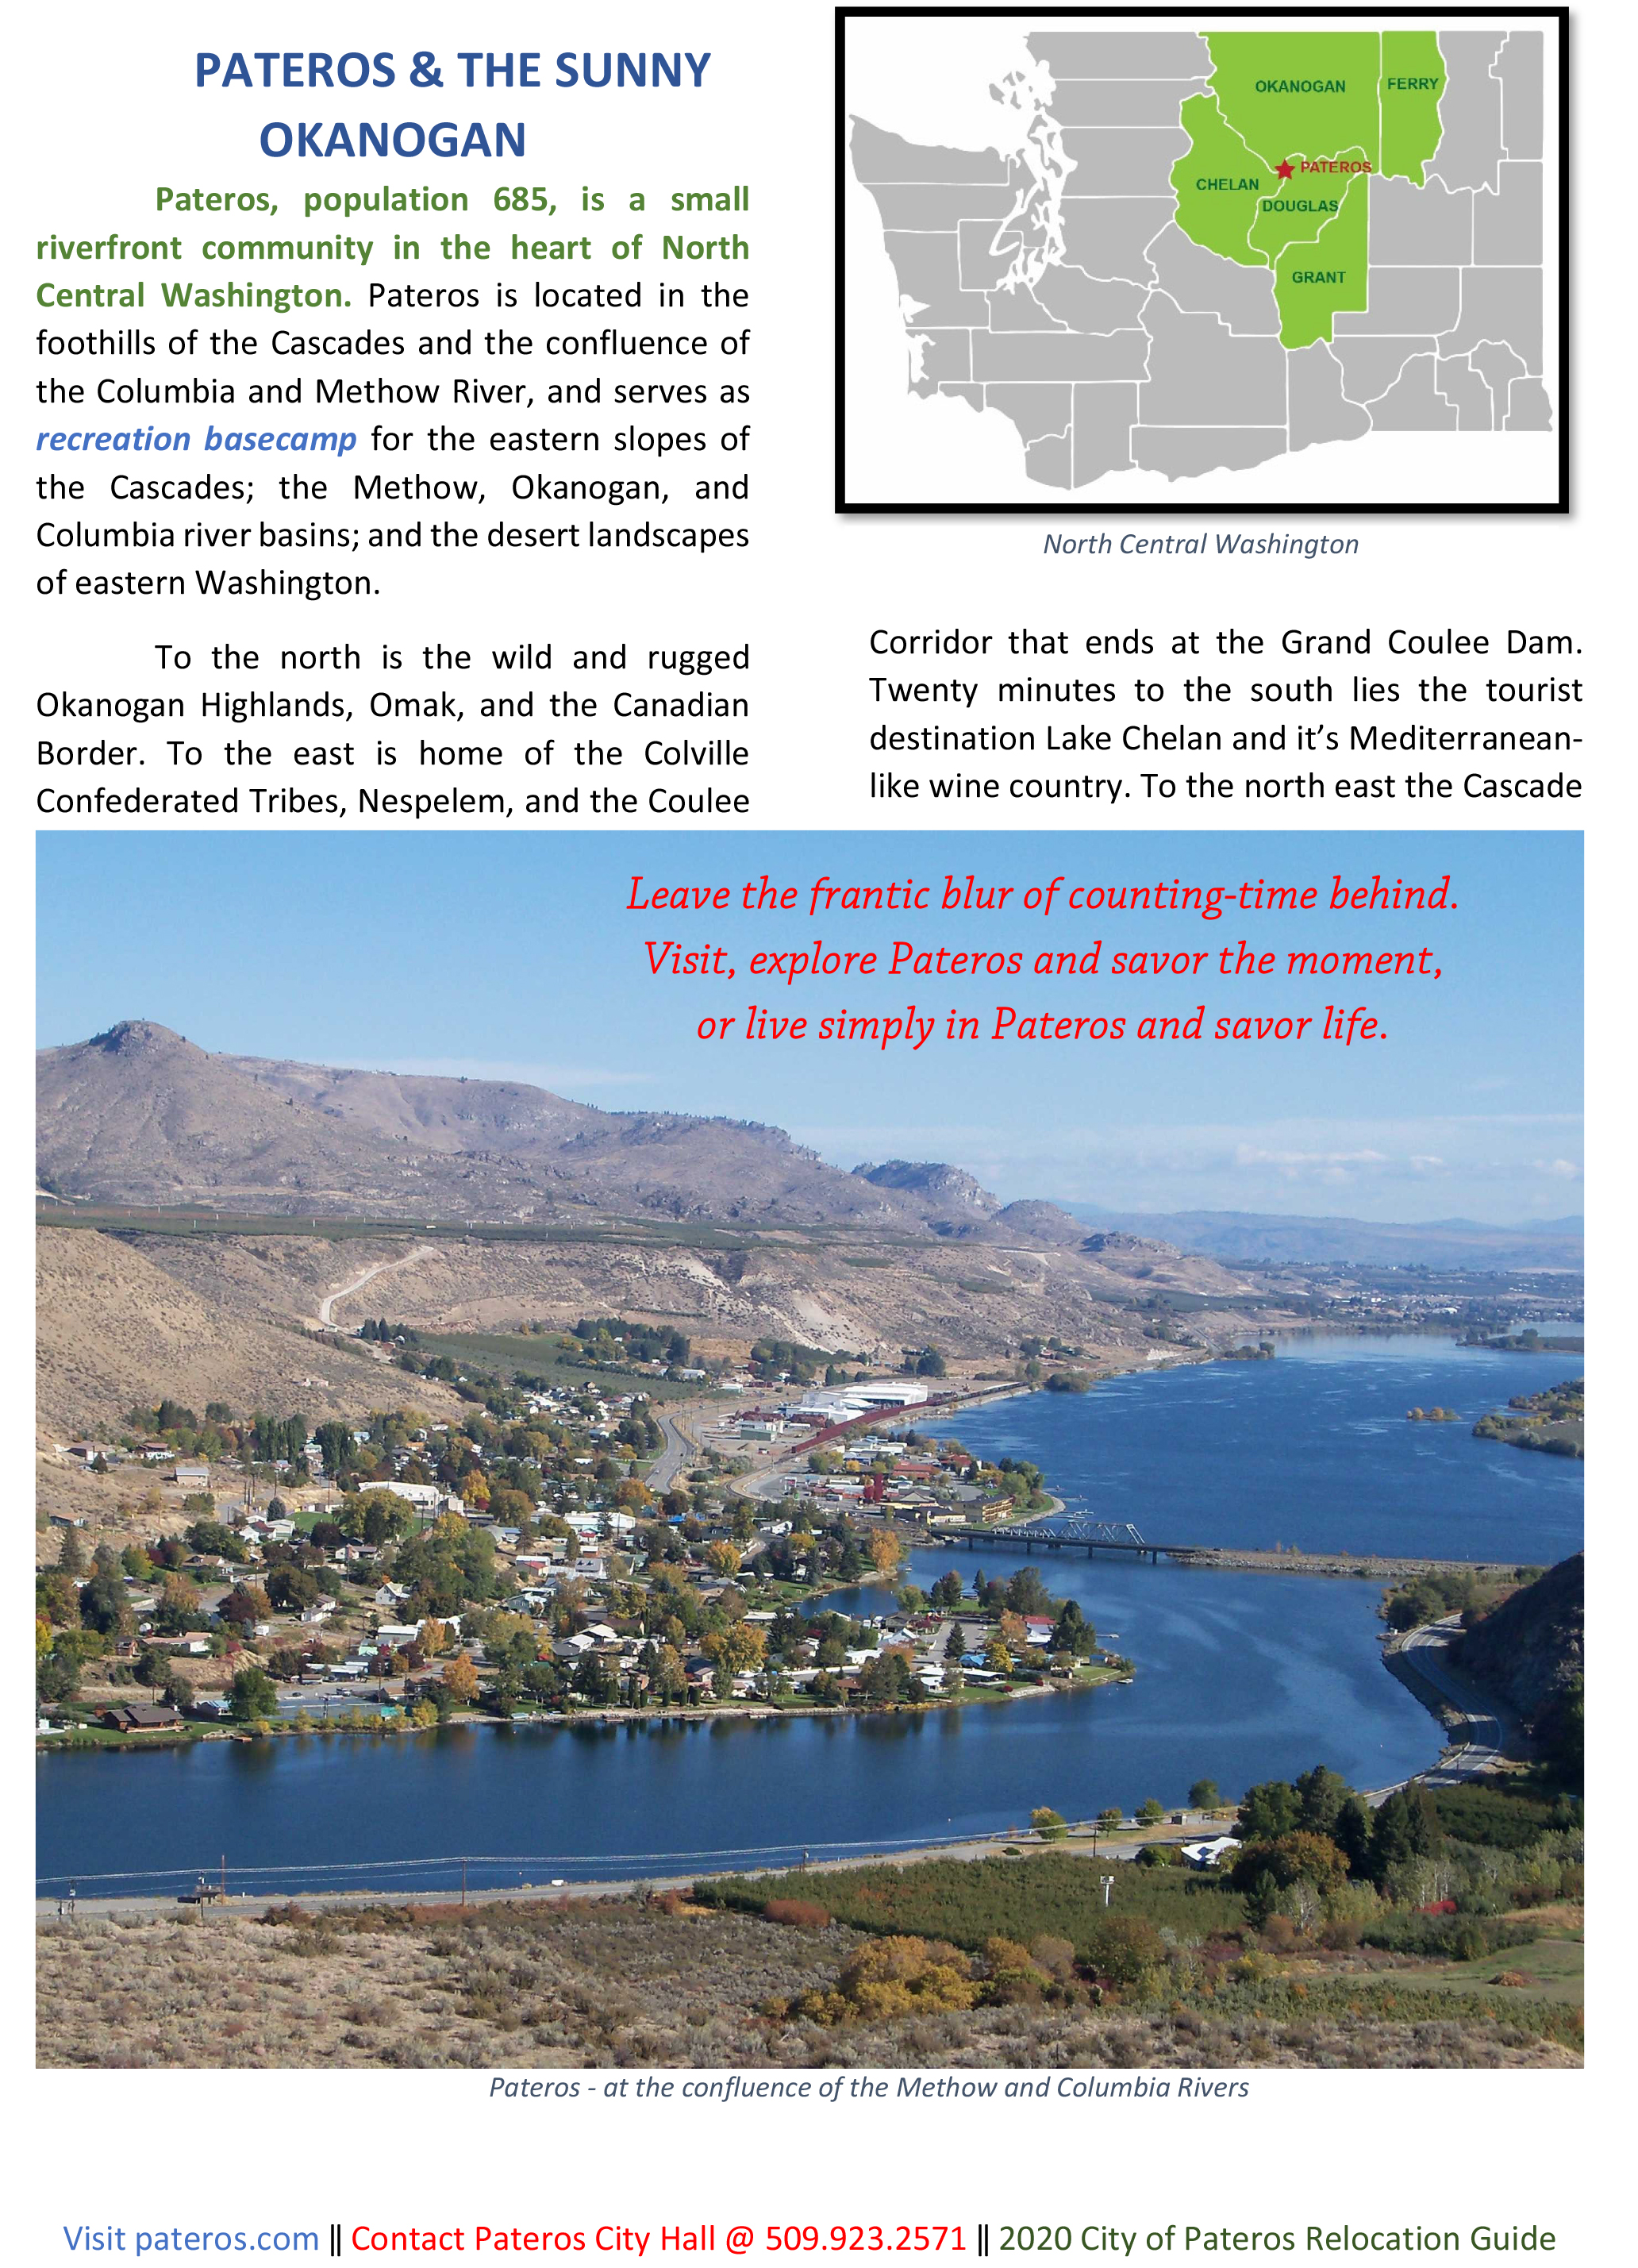 PATEROS_RELOCATION_GUIDE_2020-2.jpg